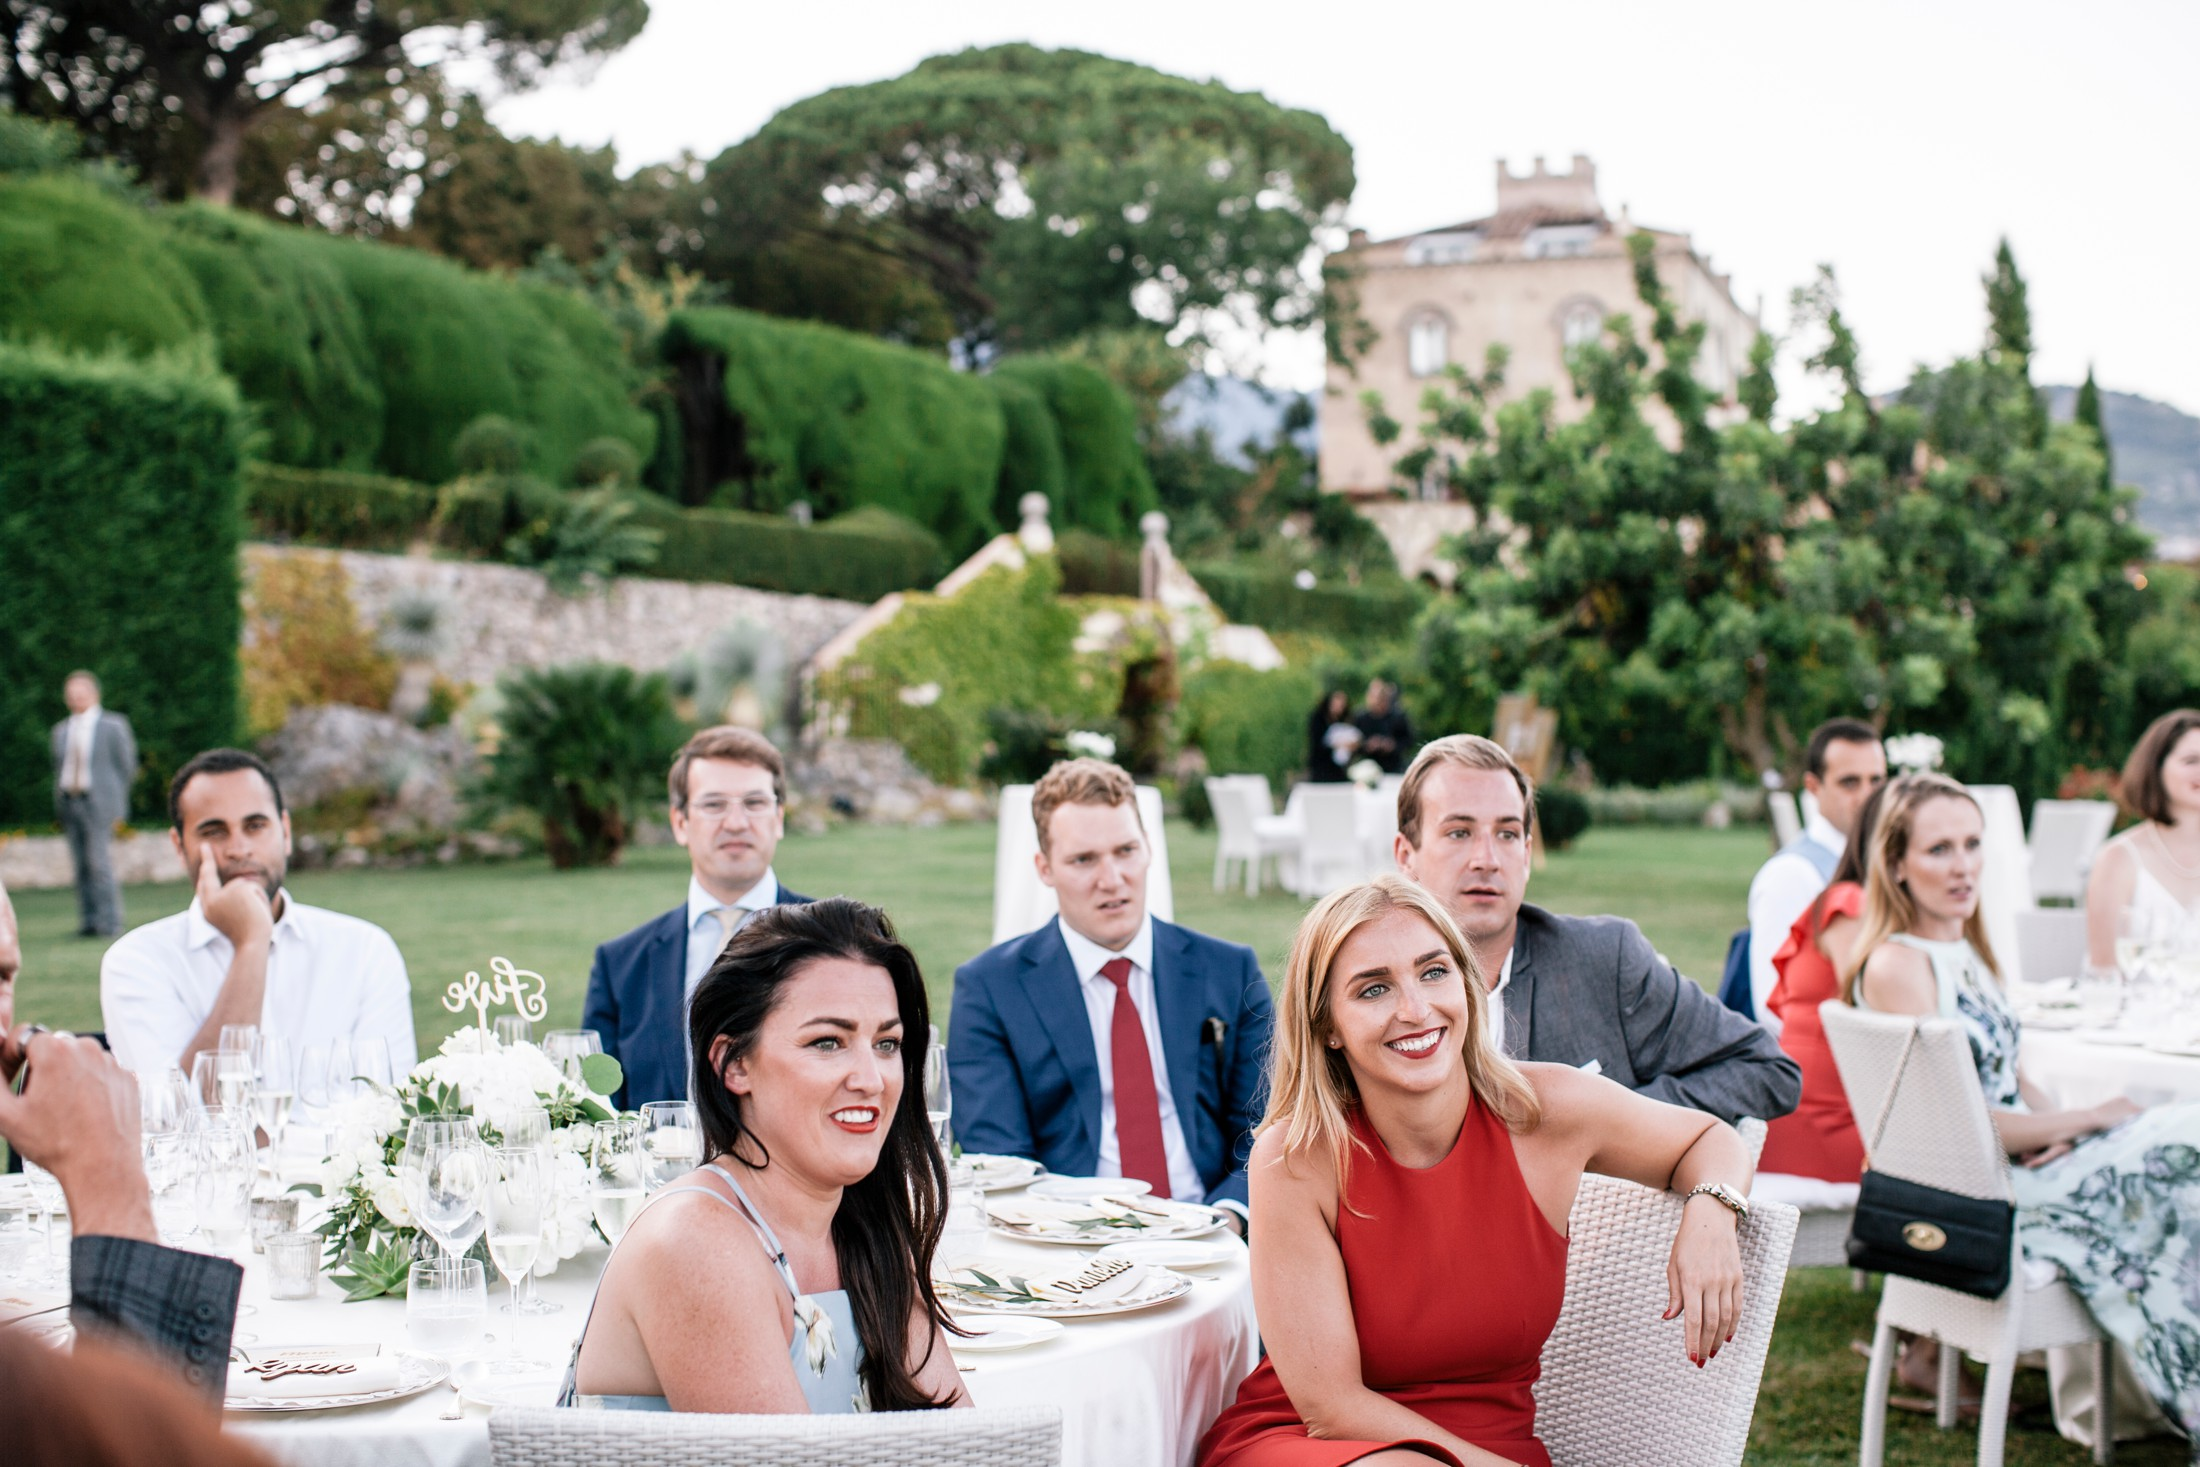 wedding guests at their table listening to the wedding speeches at villa cimbrone ravello